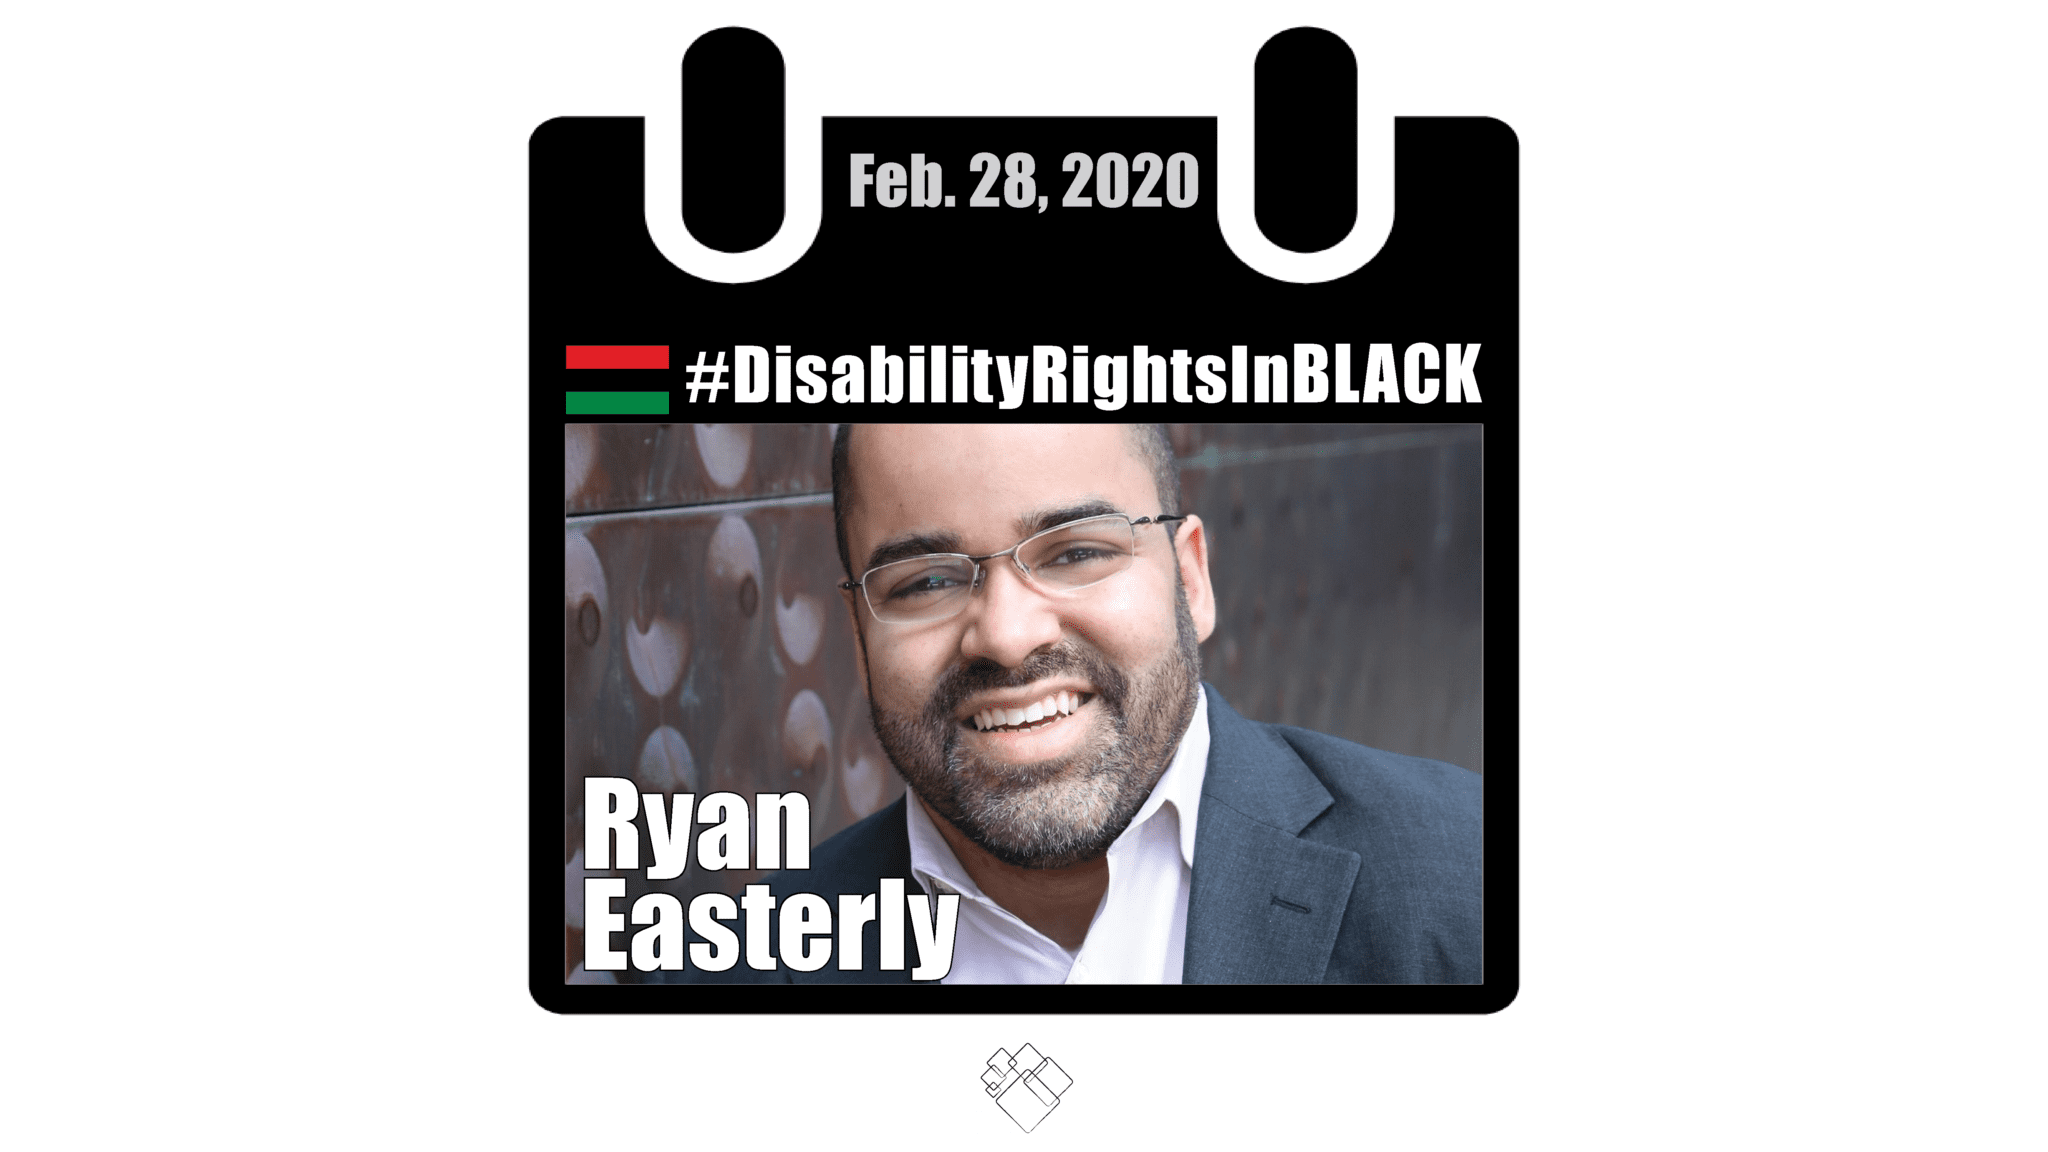 Ryan smiles at the camera wearing a suit. The image of him has the Disability Rights in Black calendar style frame graphic with the hashtag for the series at the top and the date, February 28, 2020.